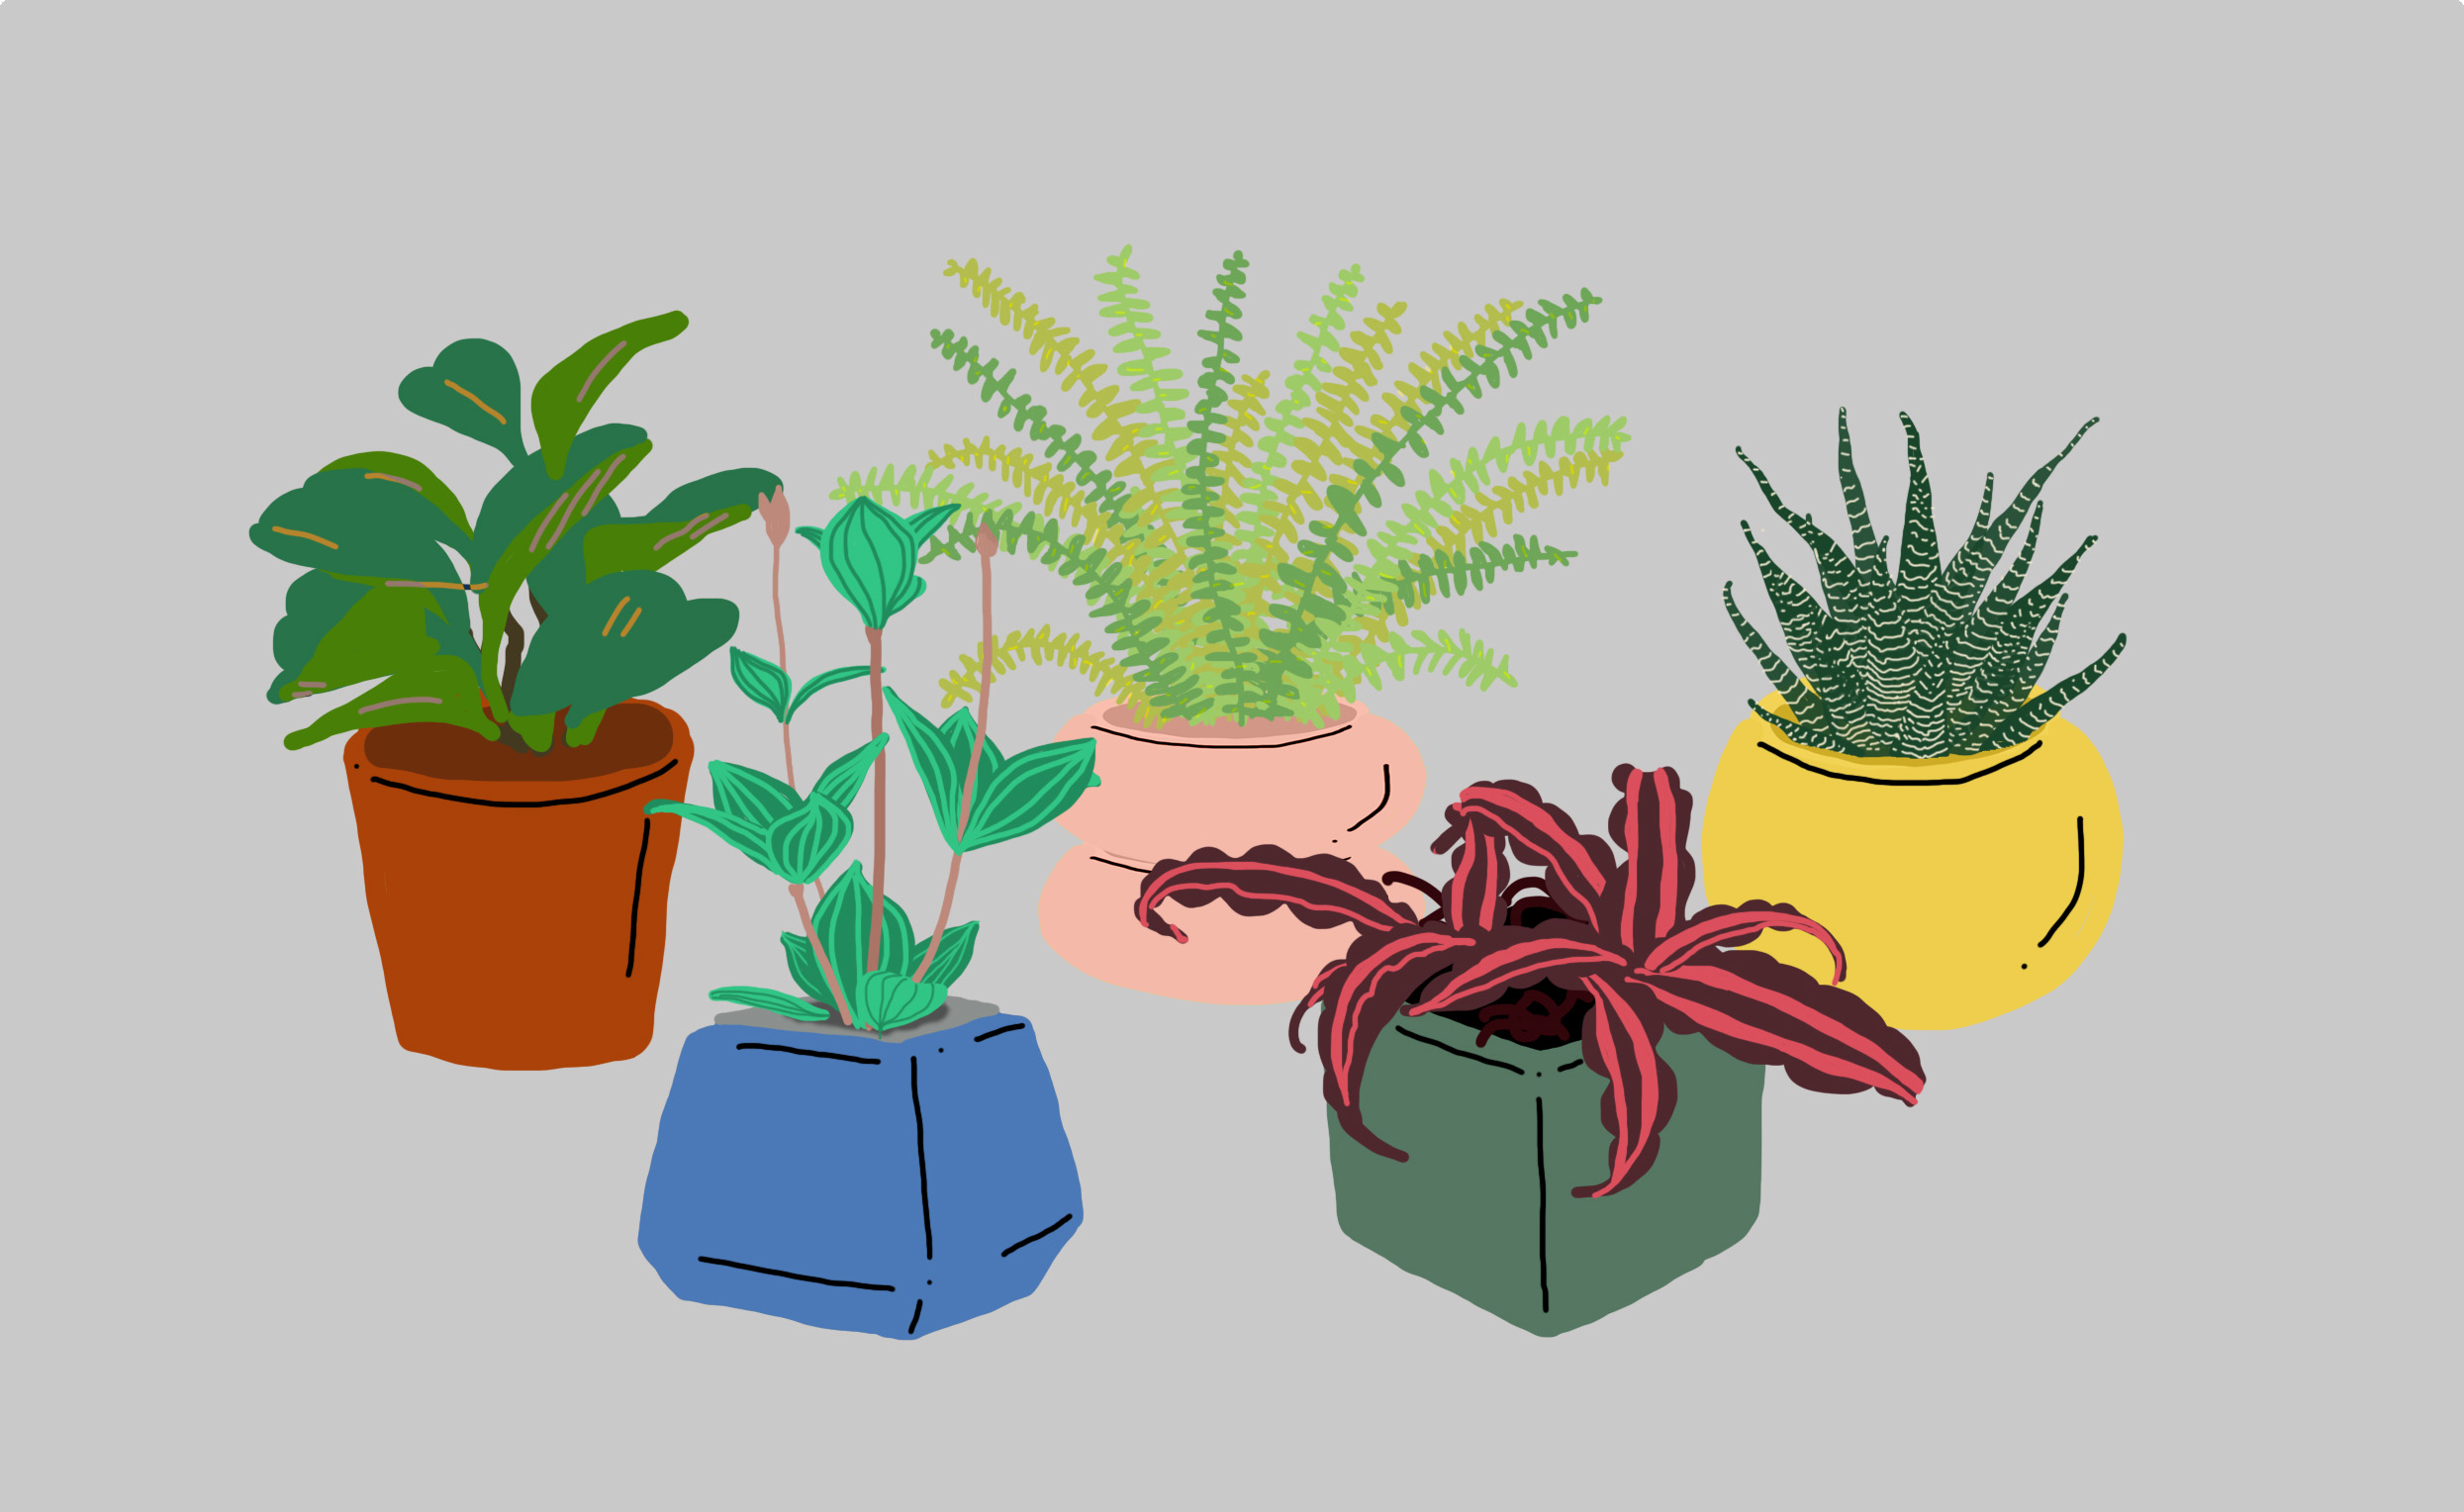 6.office plants